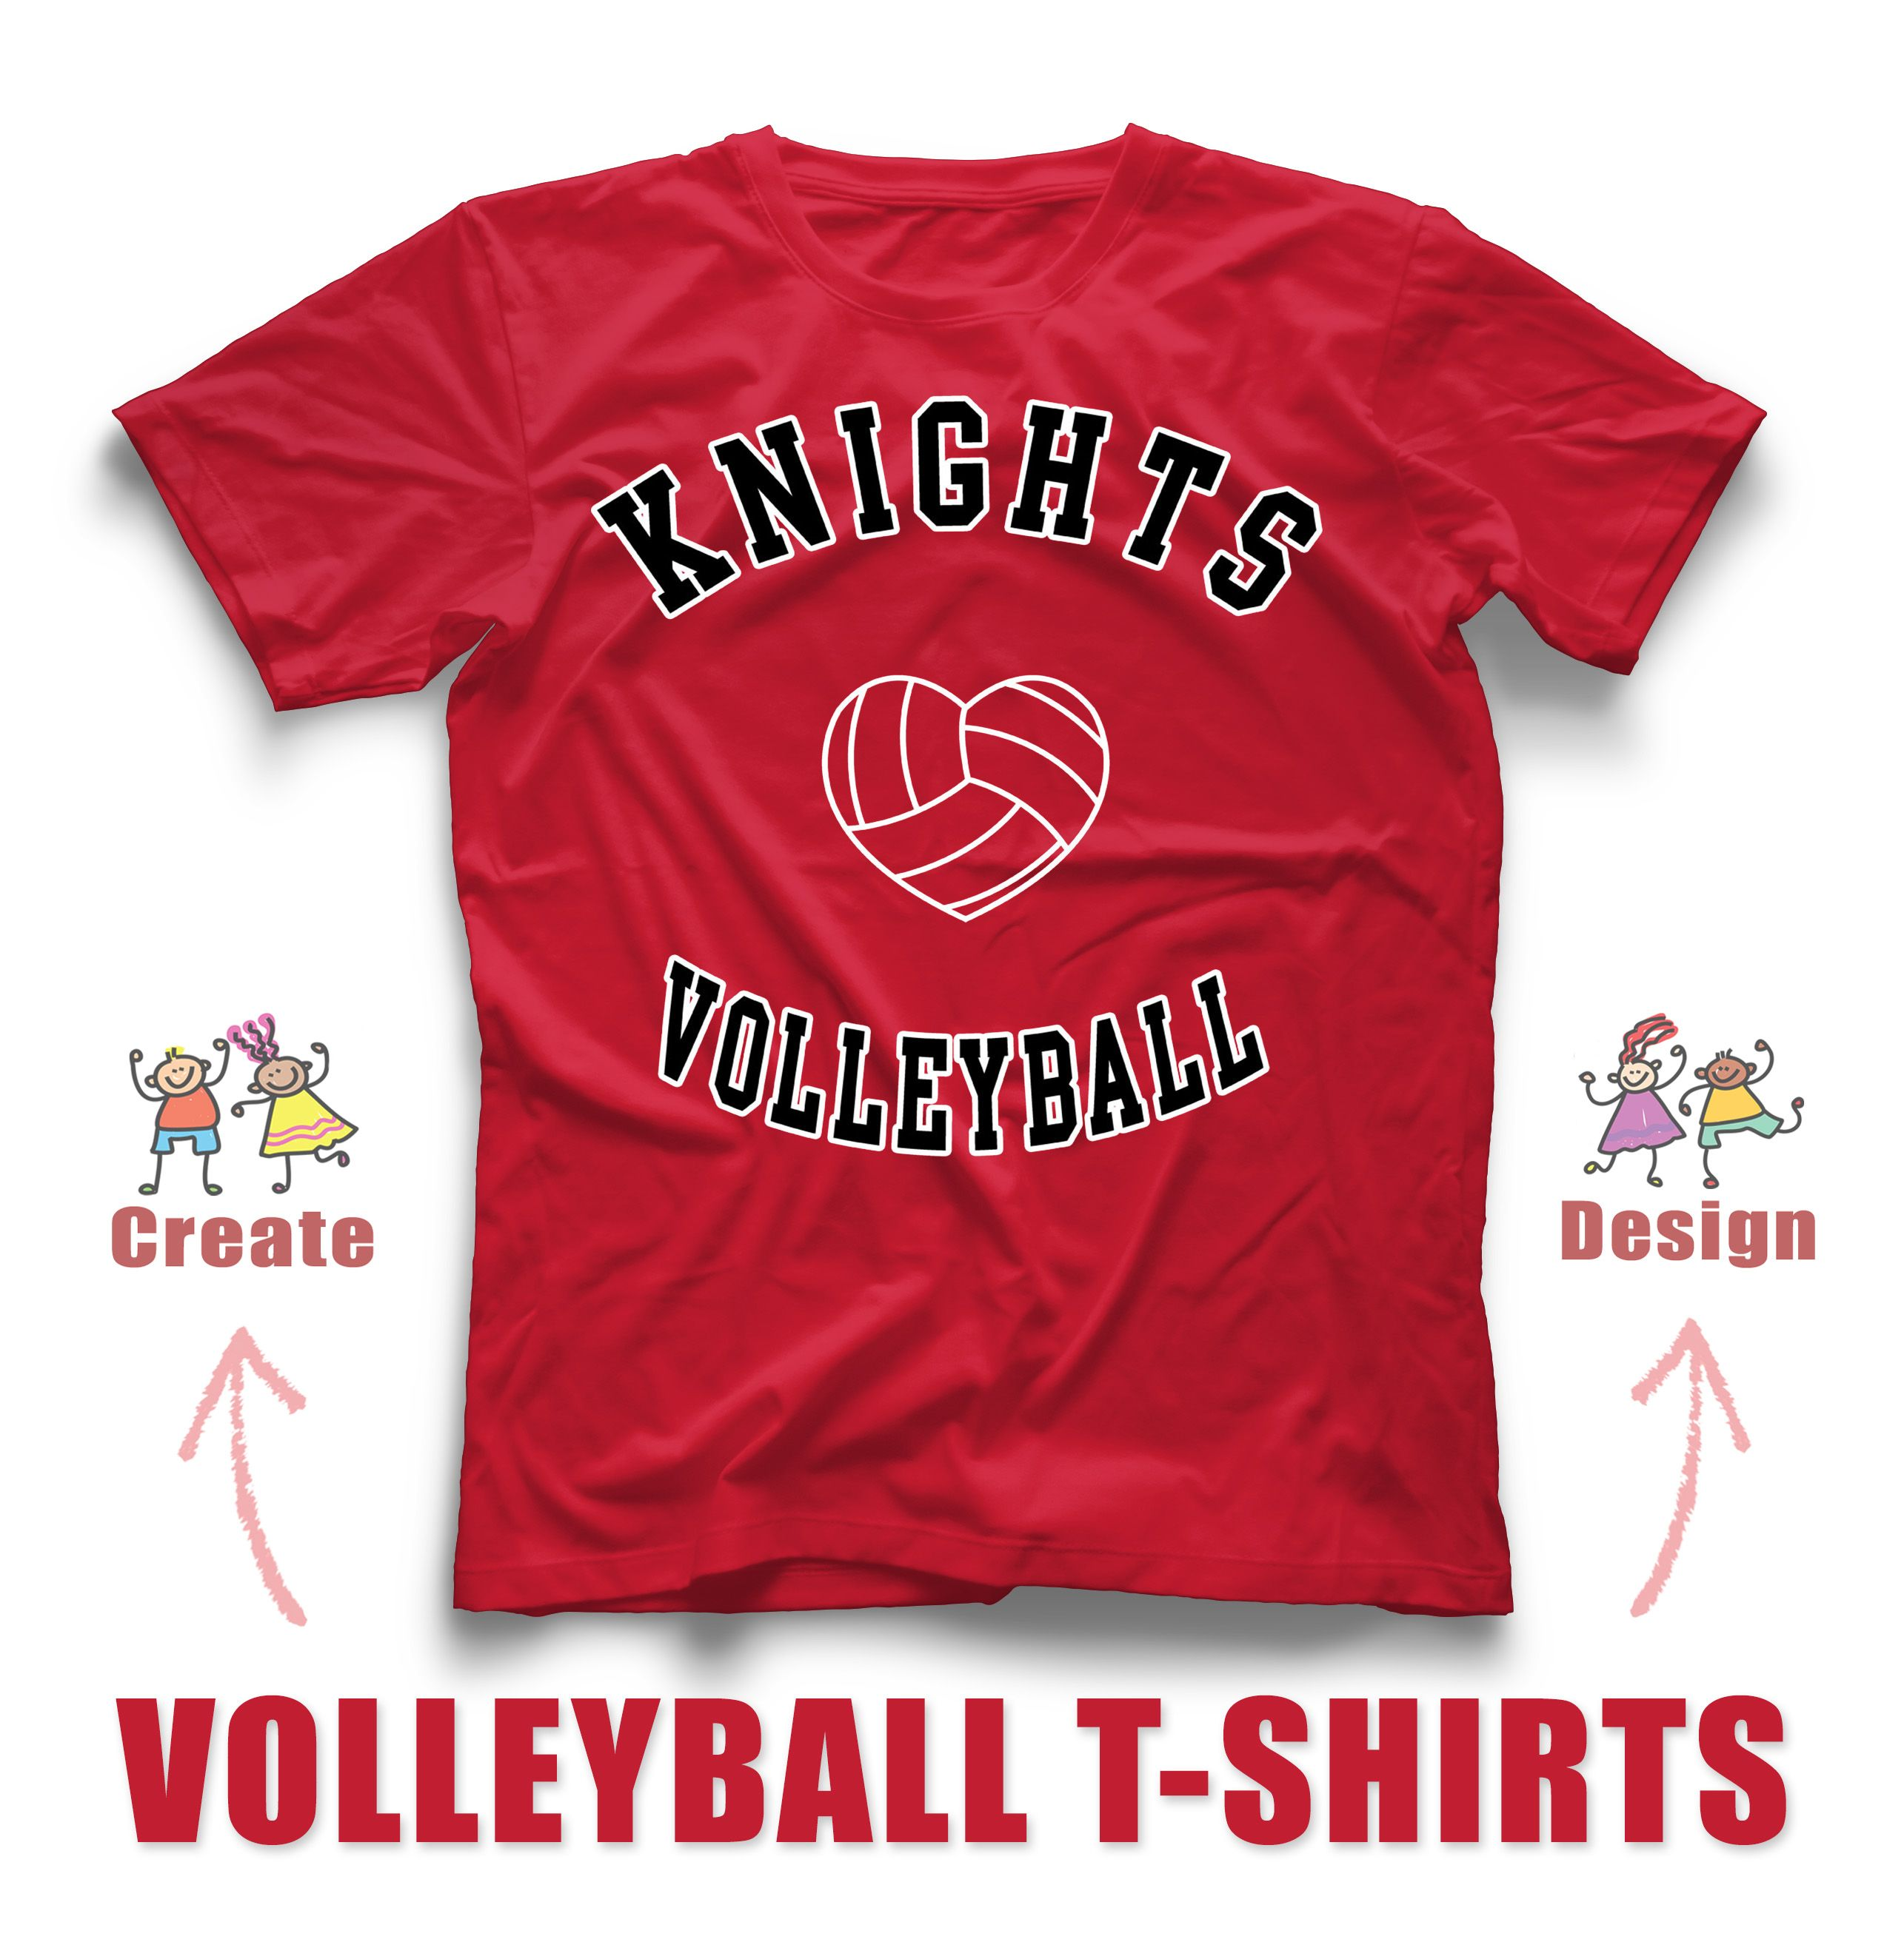 Love To Play Volleyball Create And Design Volleyball Custom T Shirts For Your Team Rushorderte In 2020 Custom Softball Shirts T Shirt Design Template Custom Softball